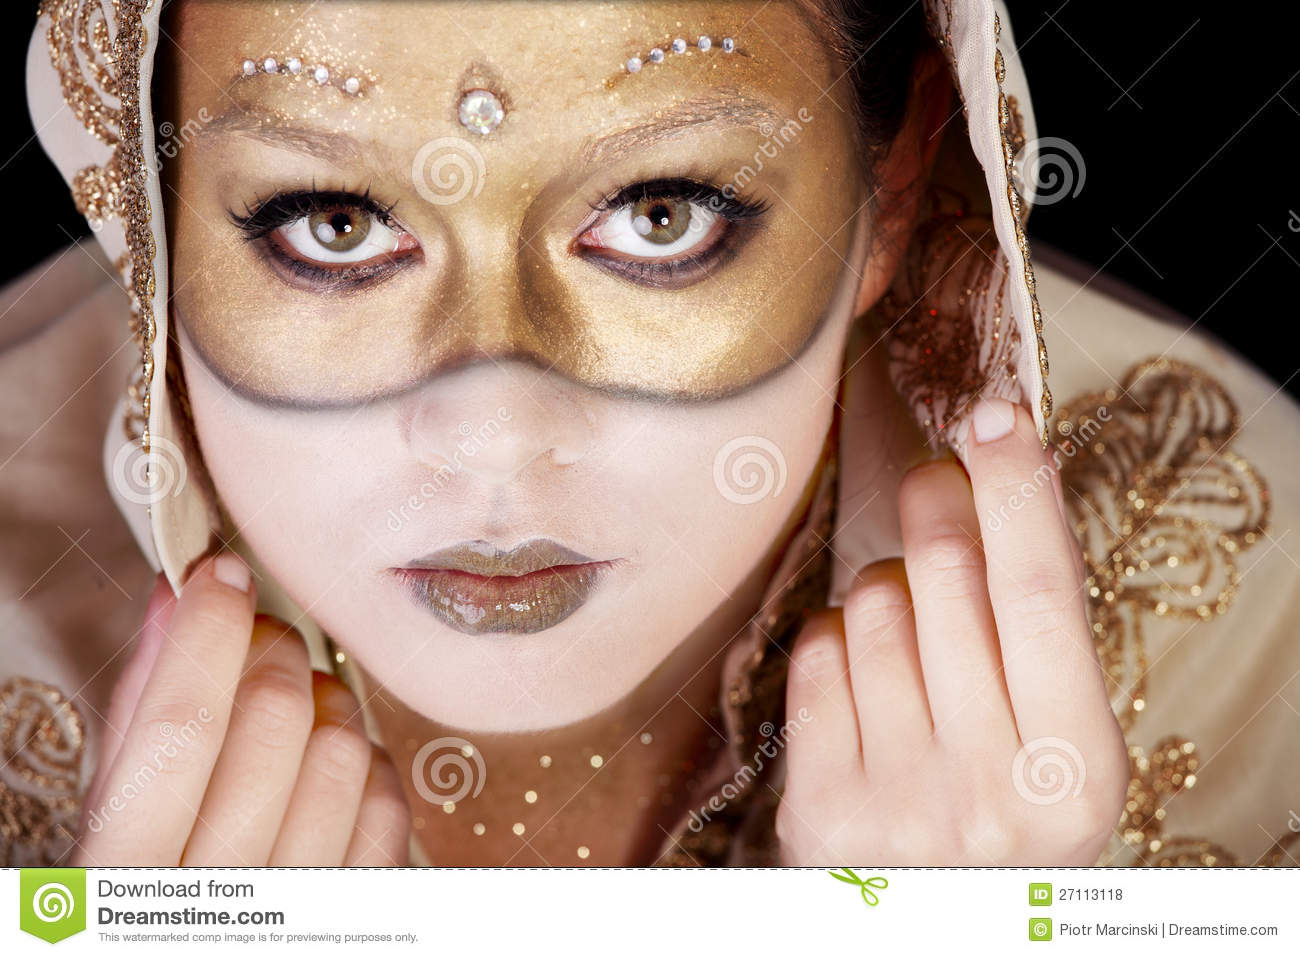 girl in a carnival mask painted on her face stock photo image of feminine glamour 27113118. Black Bedroom Furniture Sets. Home Design Ideas